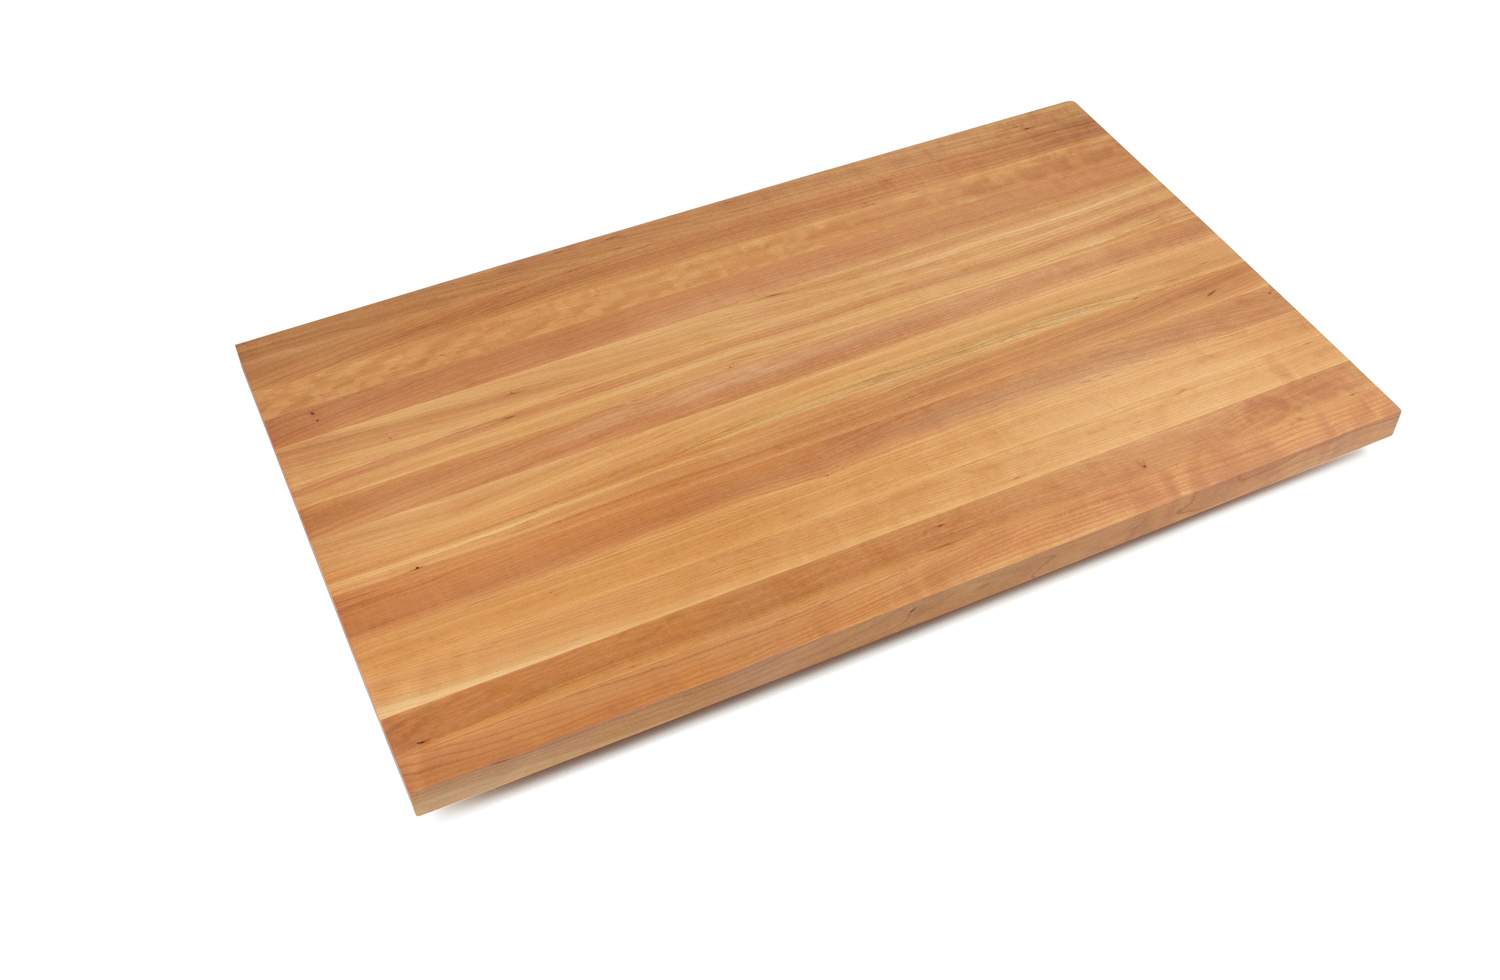 1.5 in. thick cherry edge grain butcher block counters 30 inches wide